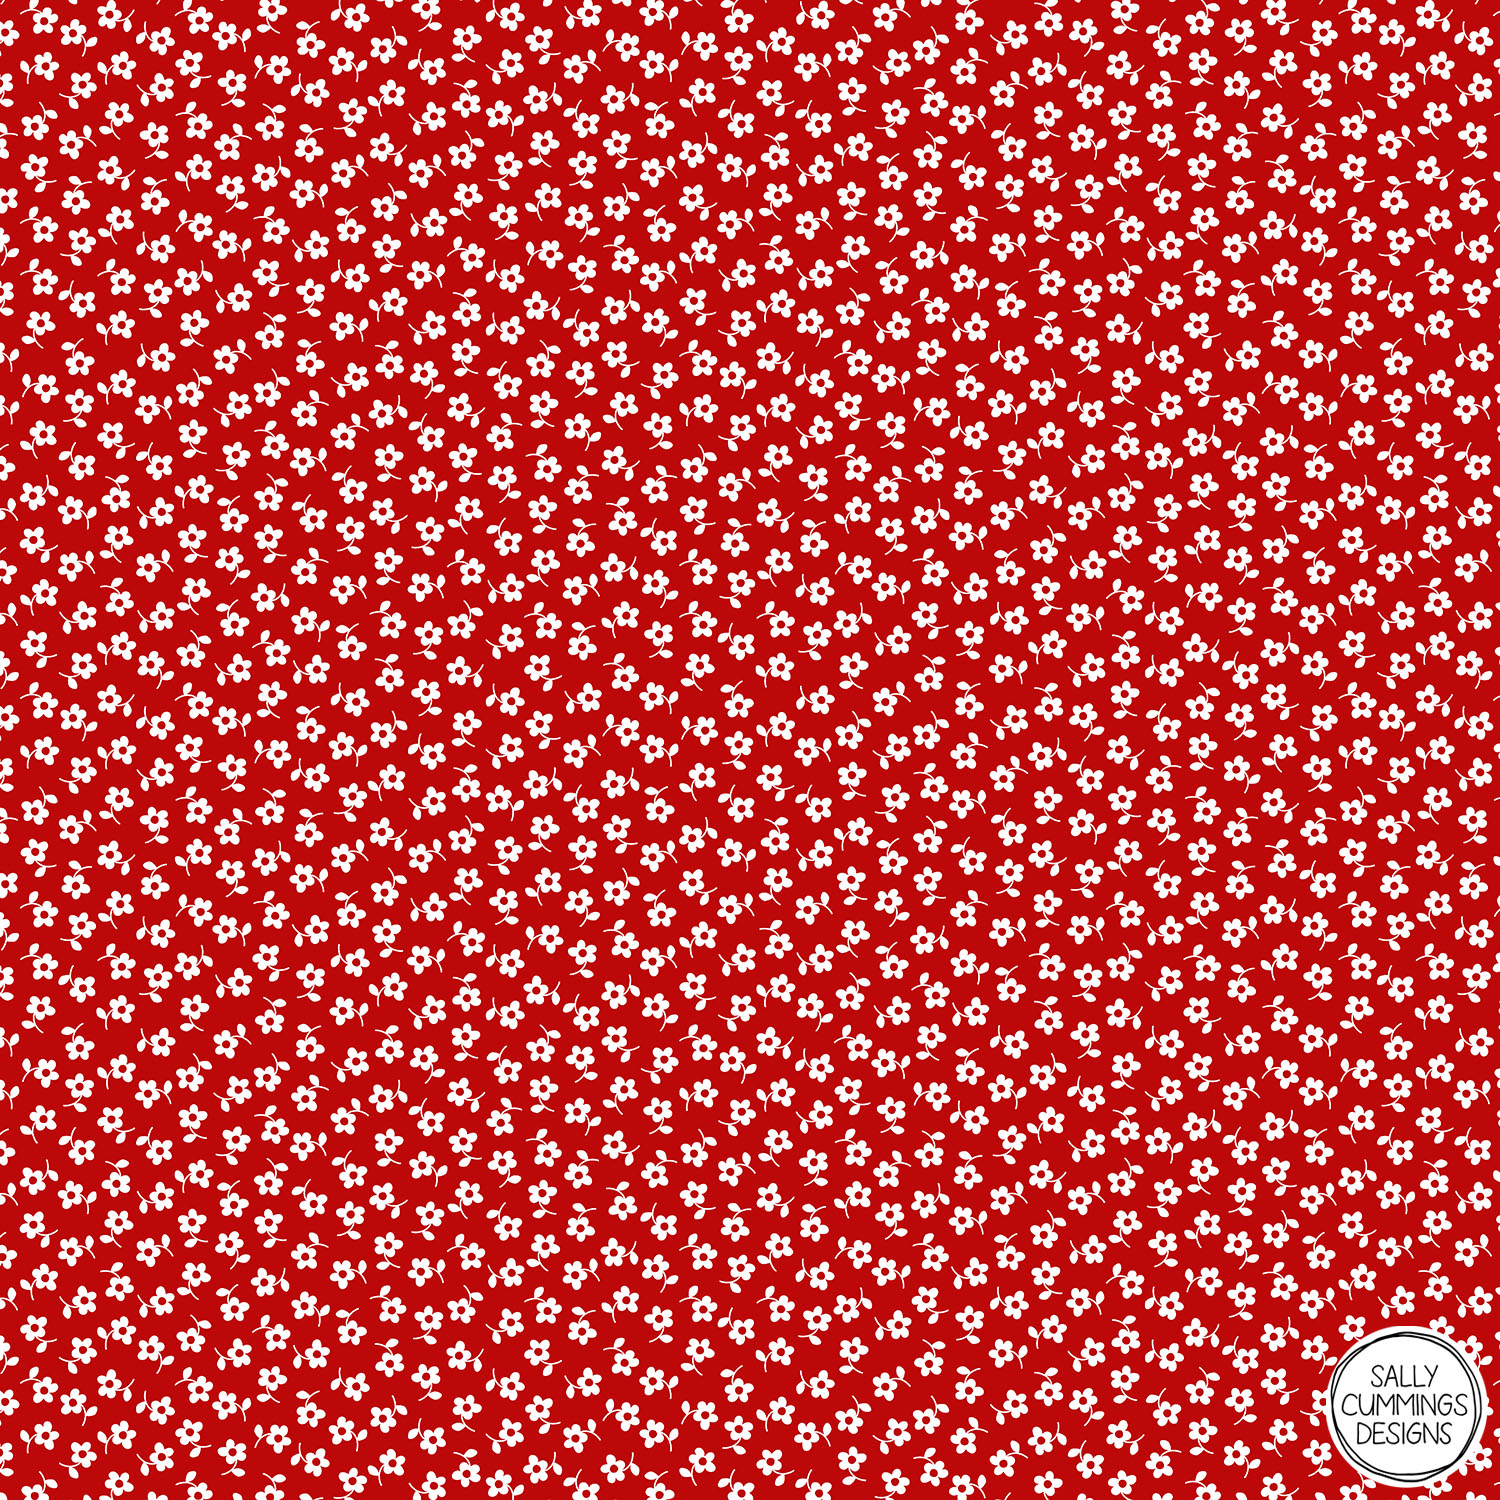 Sally Cummings Designs - Forget Me Nots Pattern (White on Red)